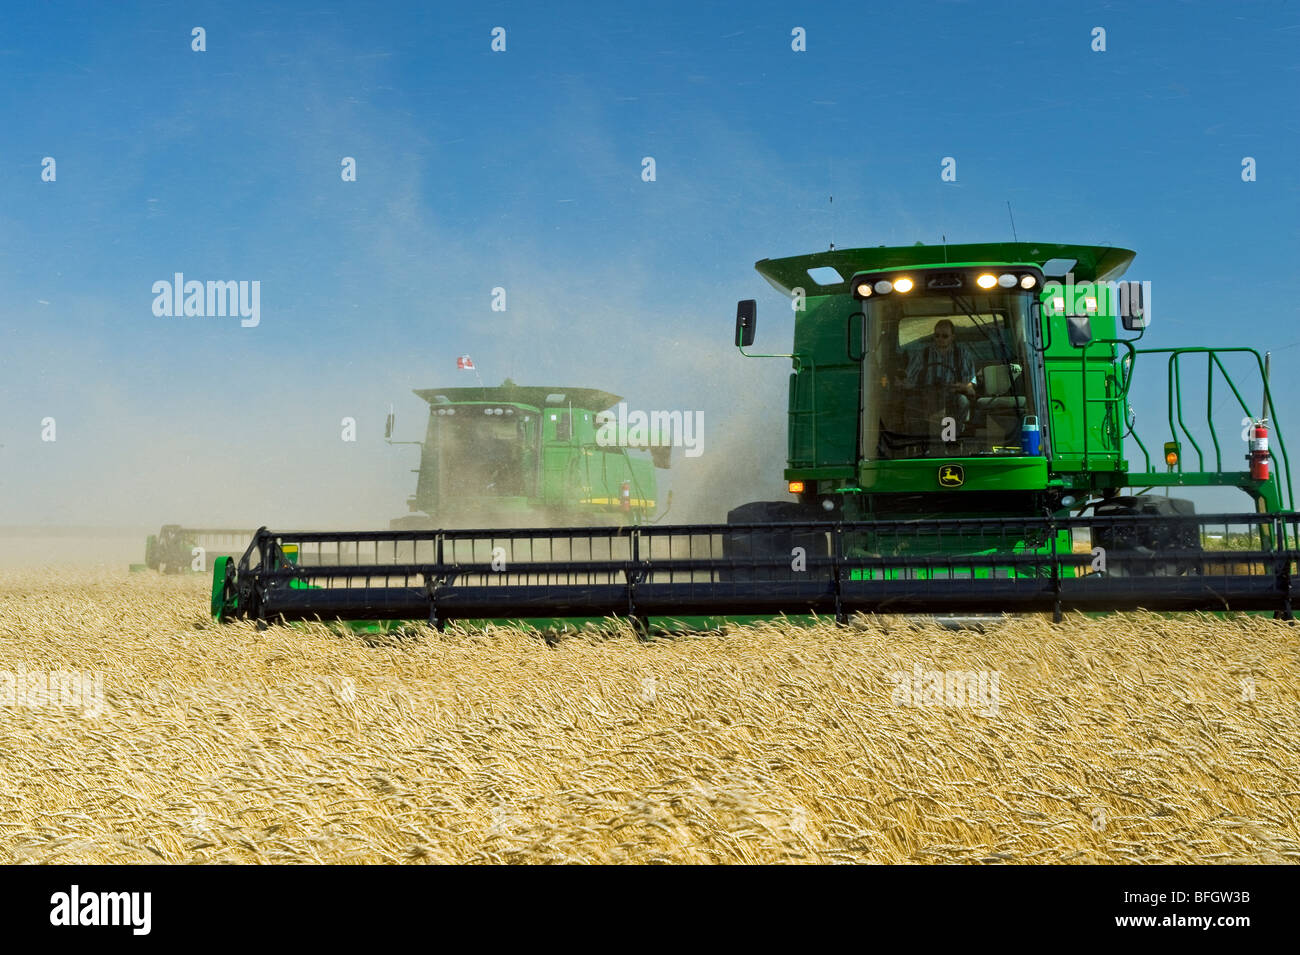 Two combine harvesters work a field of spring wheat, La Salle, Manitoba, Canada - Stock Image